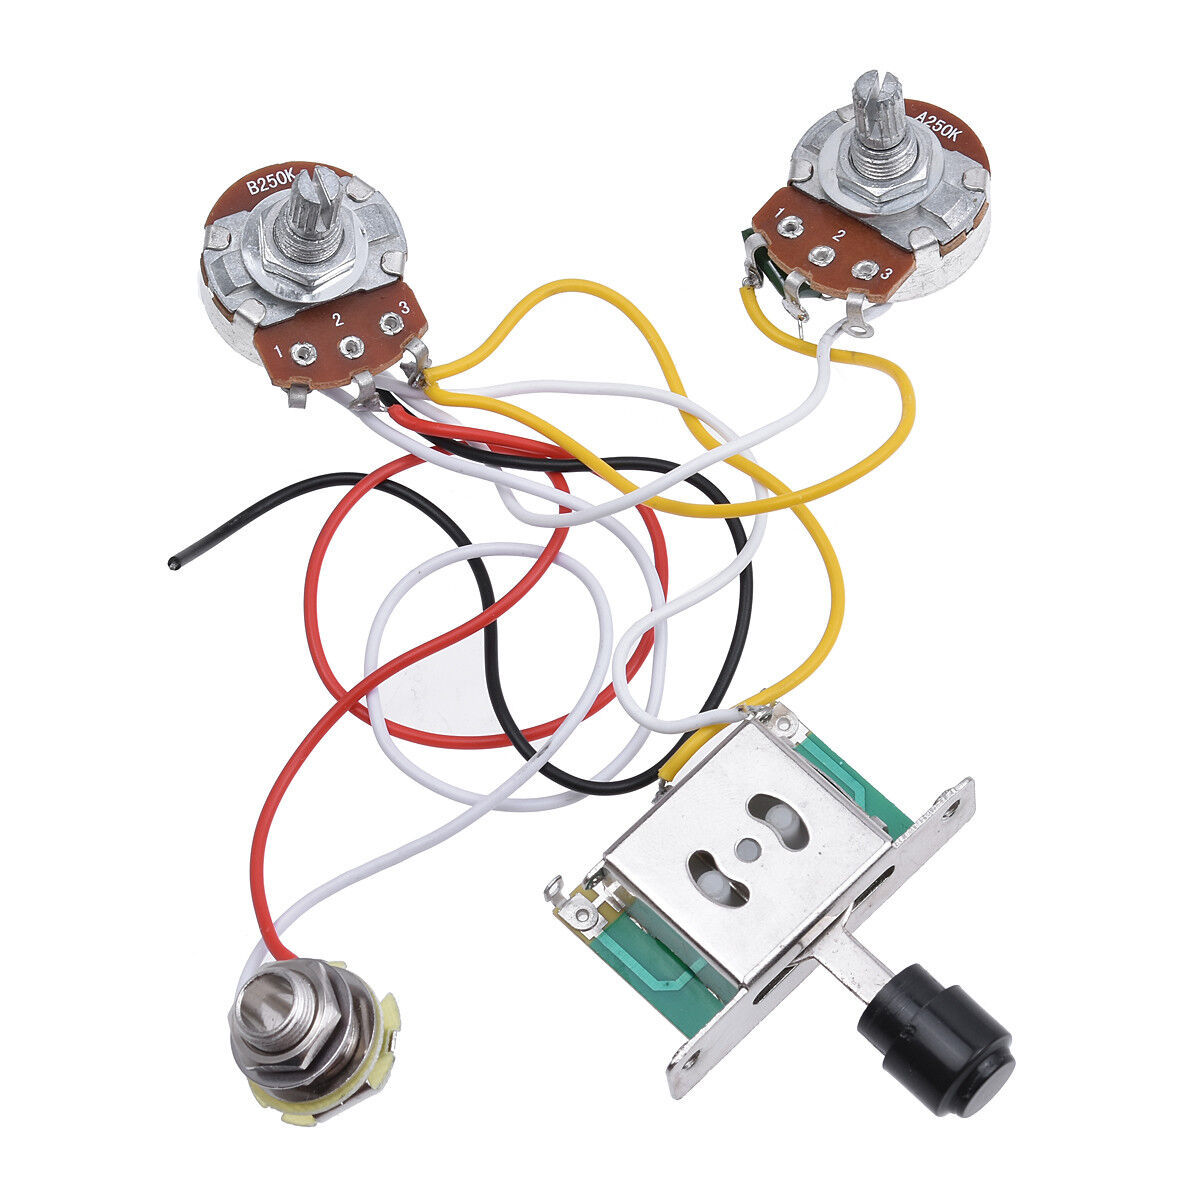 guitar prewired wiring harness for fender tele parts 3 way. Black Bedroom Furniture Sets. Home Design Ideas